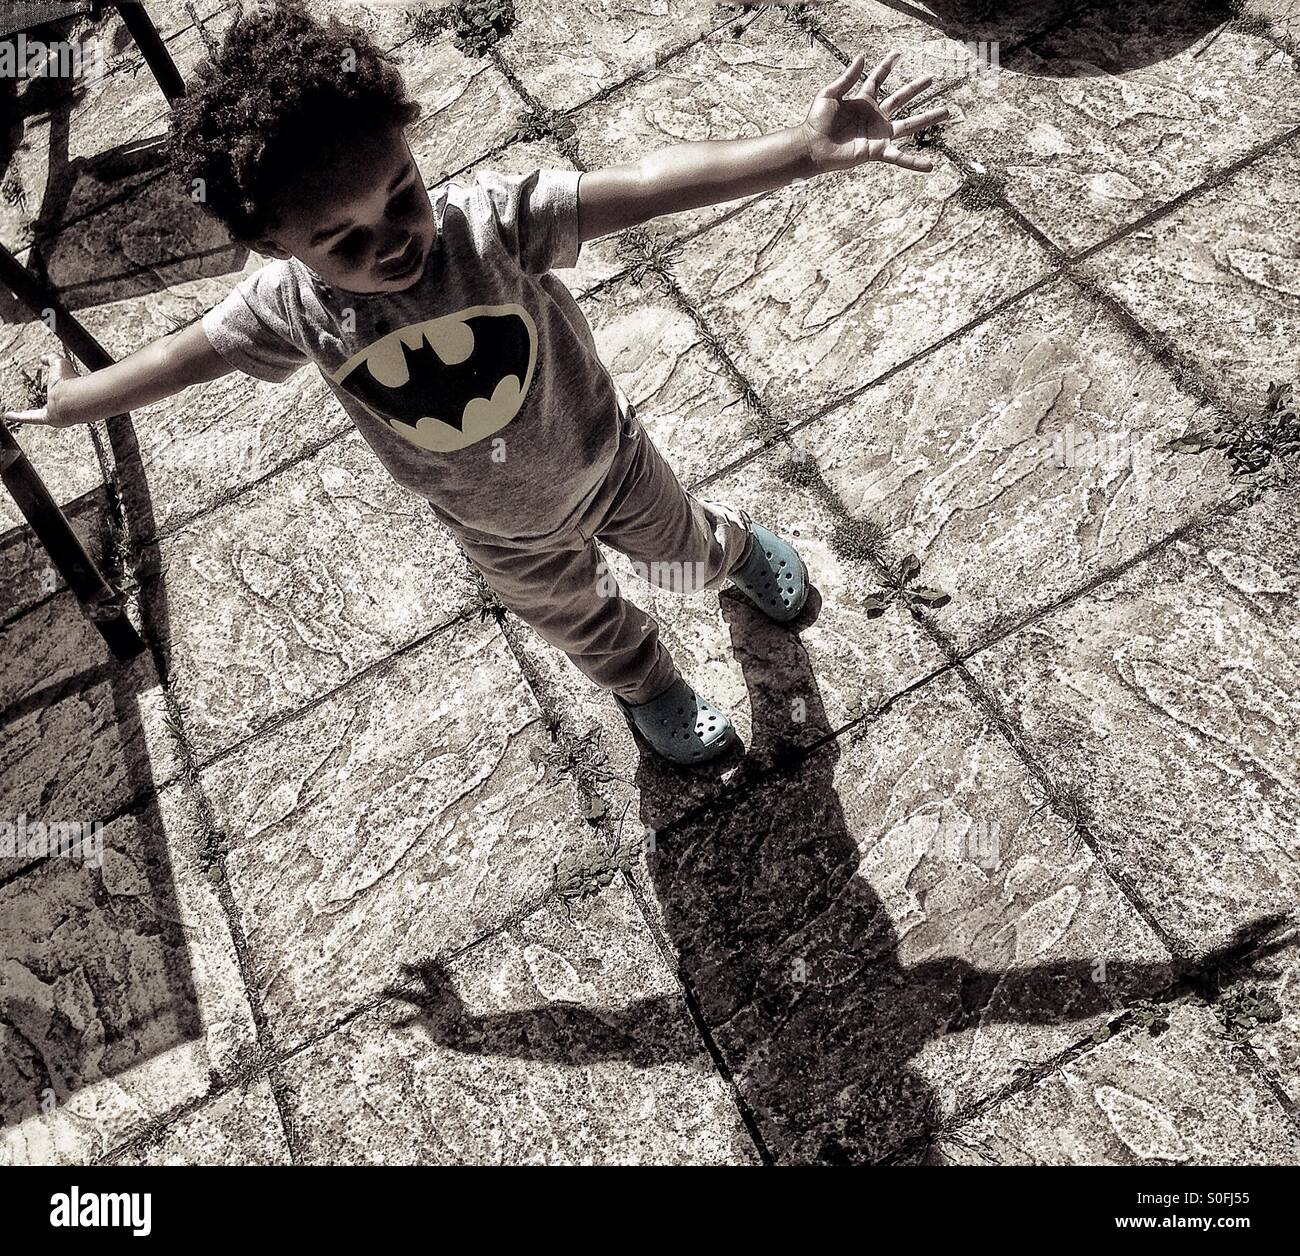 A little boy and his shadow. - Stock Image